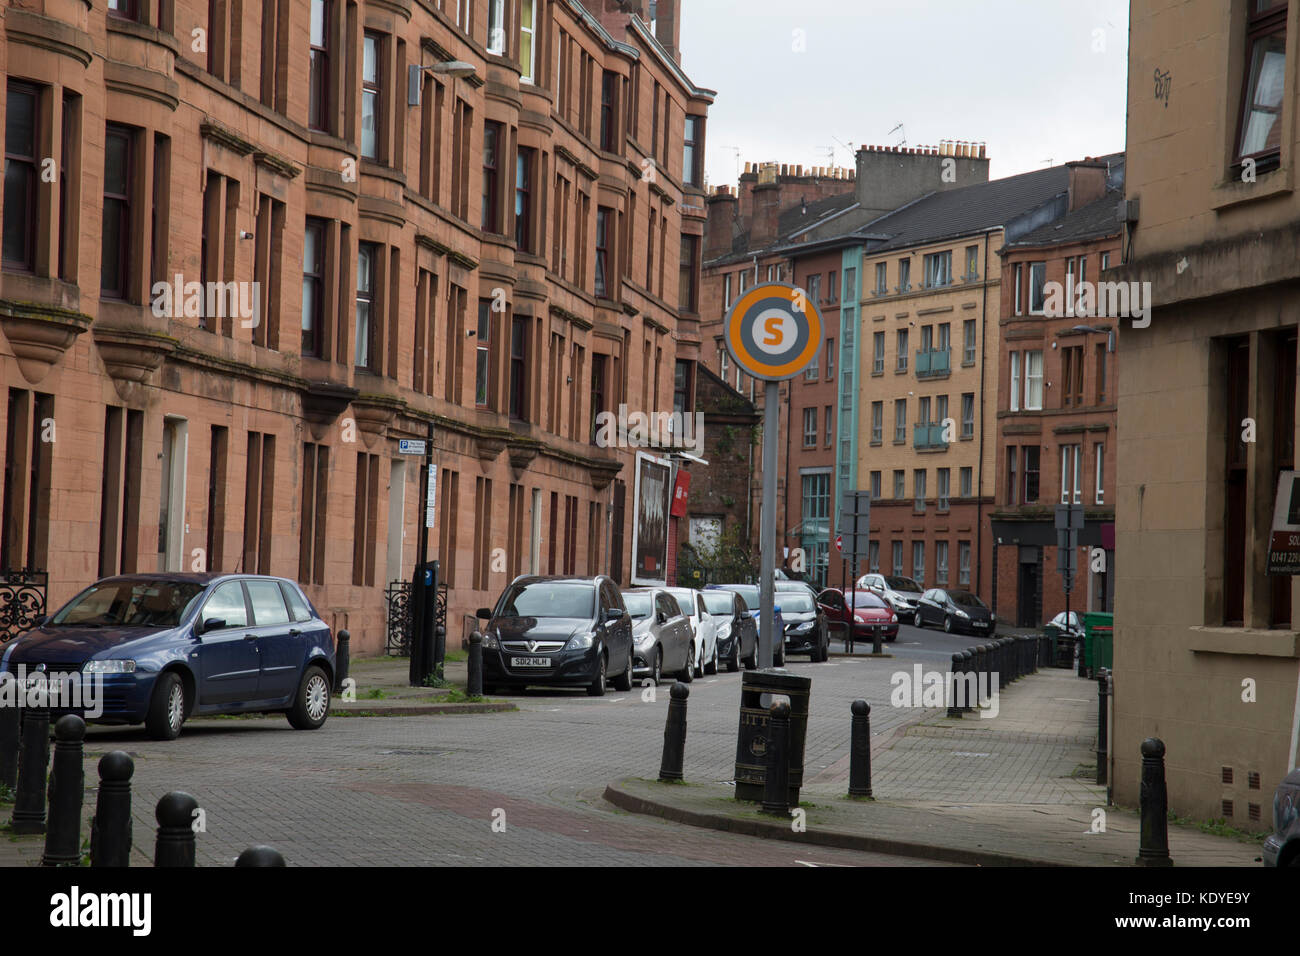 Glasgow Partick street scene with tenement flats - Stock Image